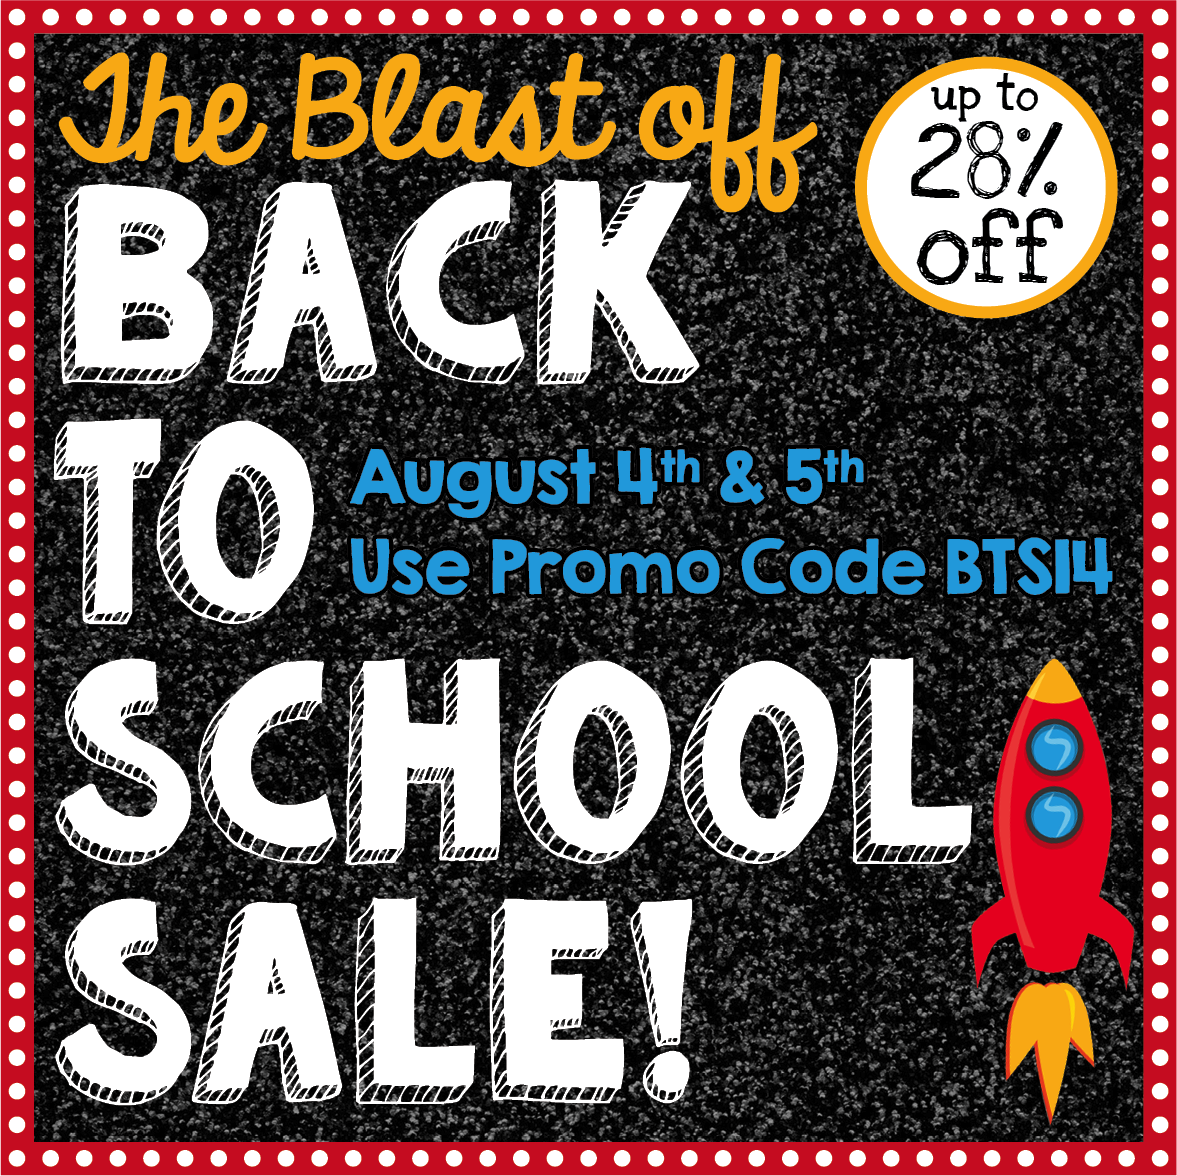 #tpt14 tpt14 back to school sale